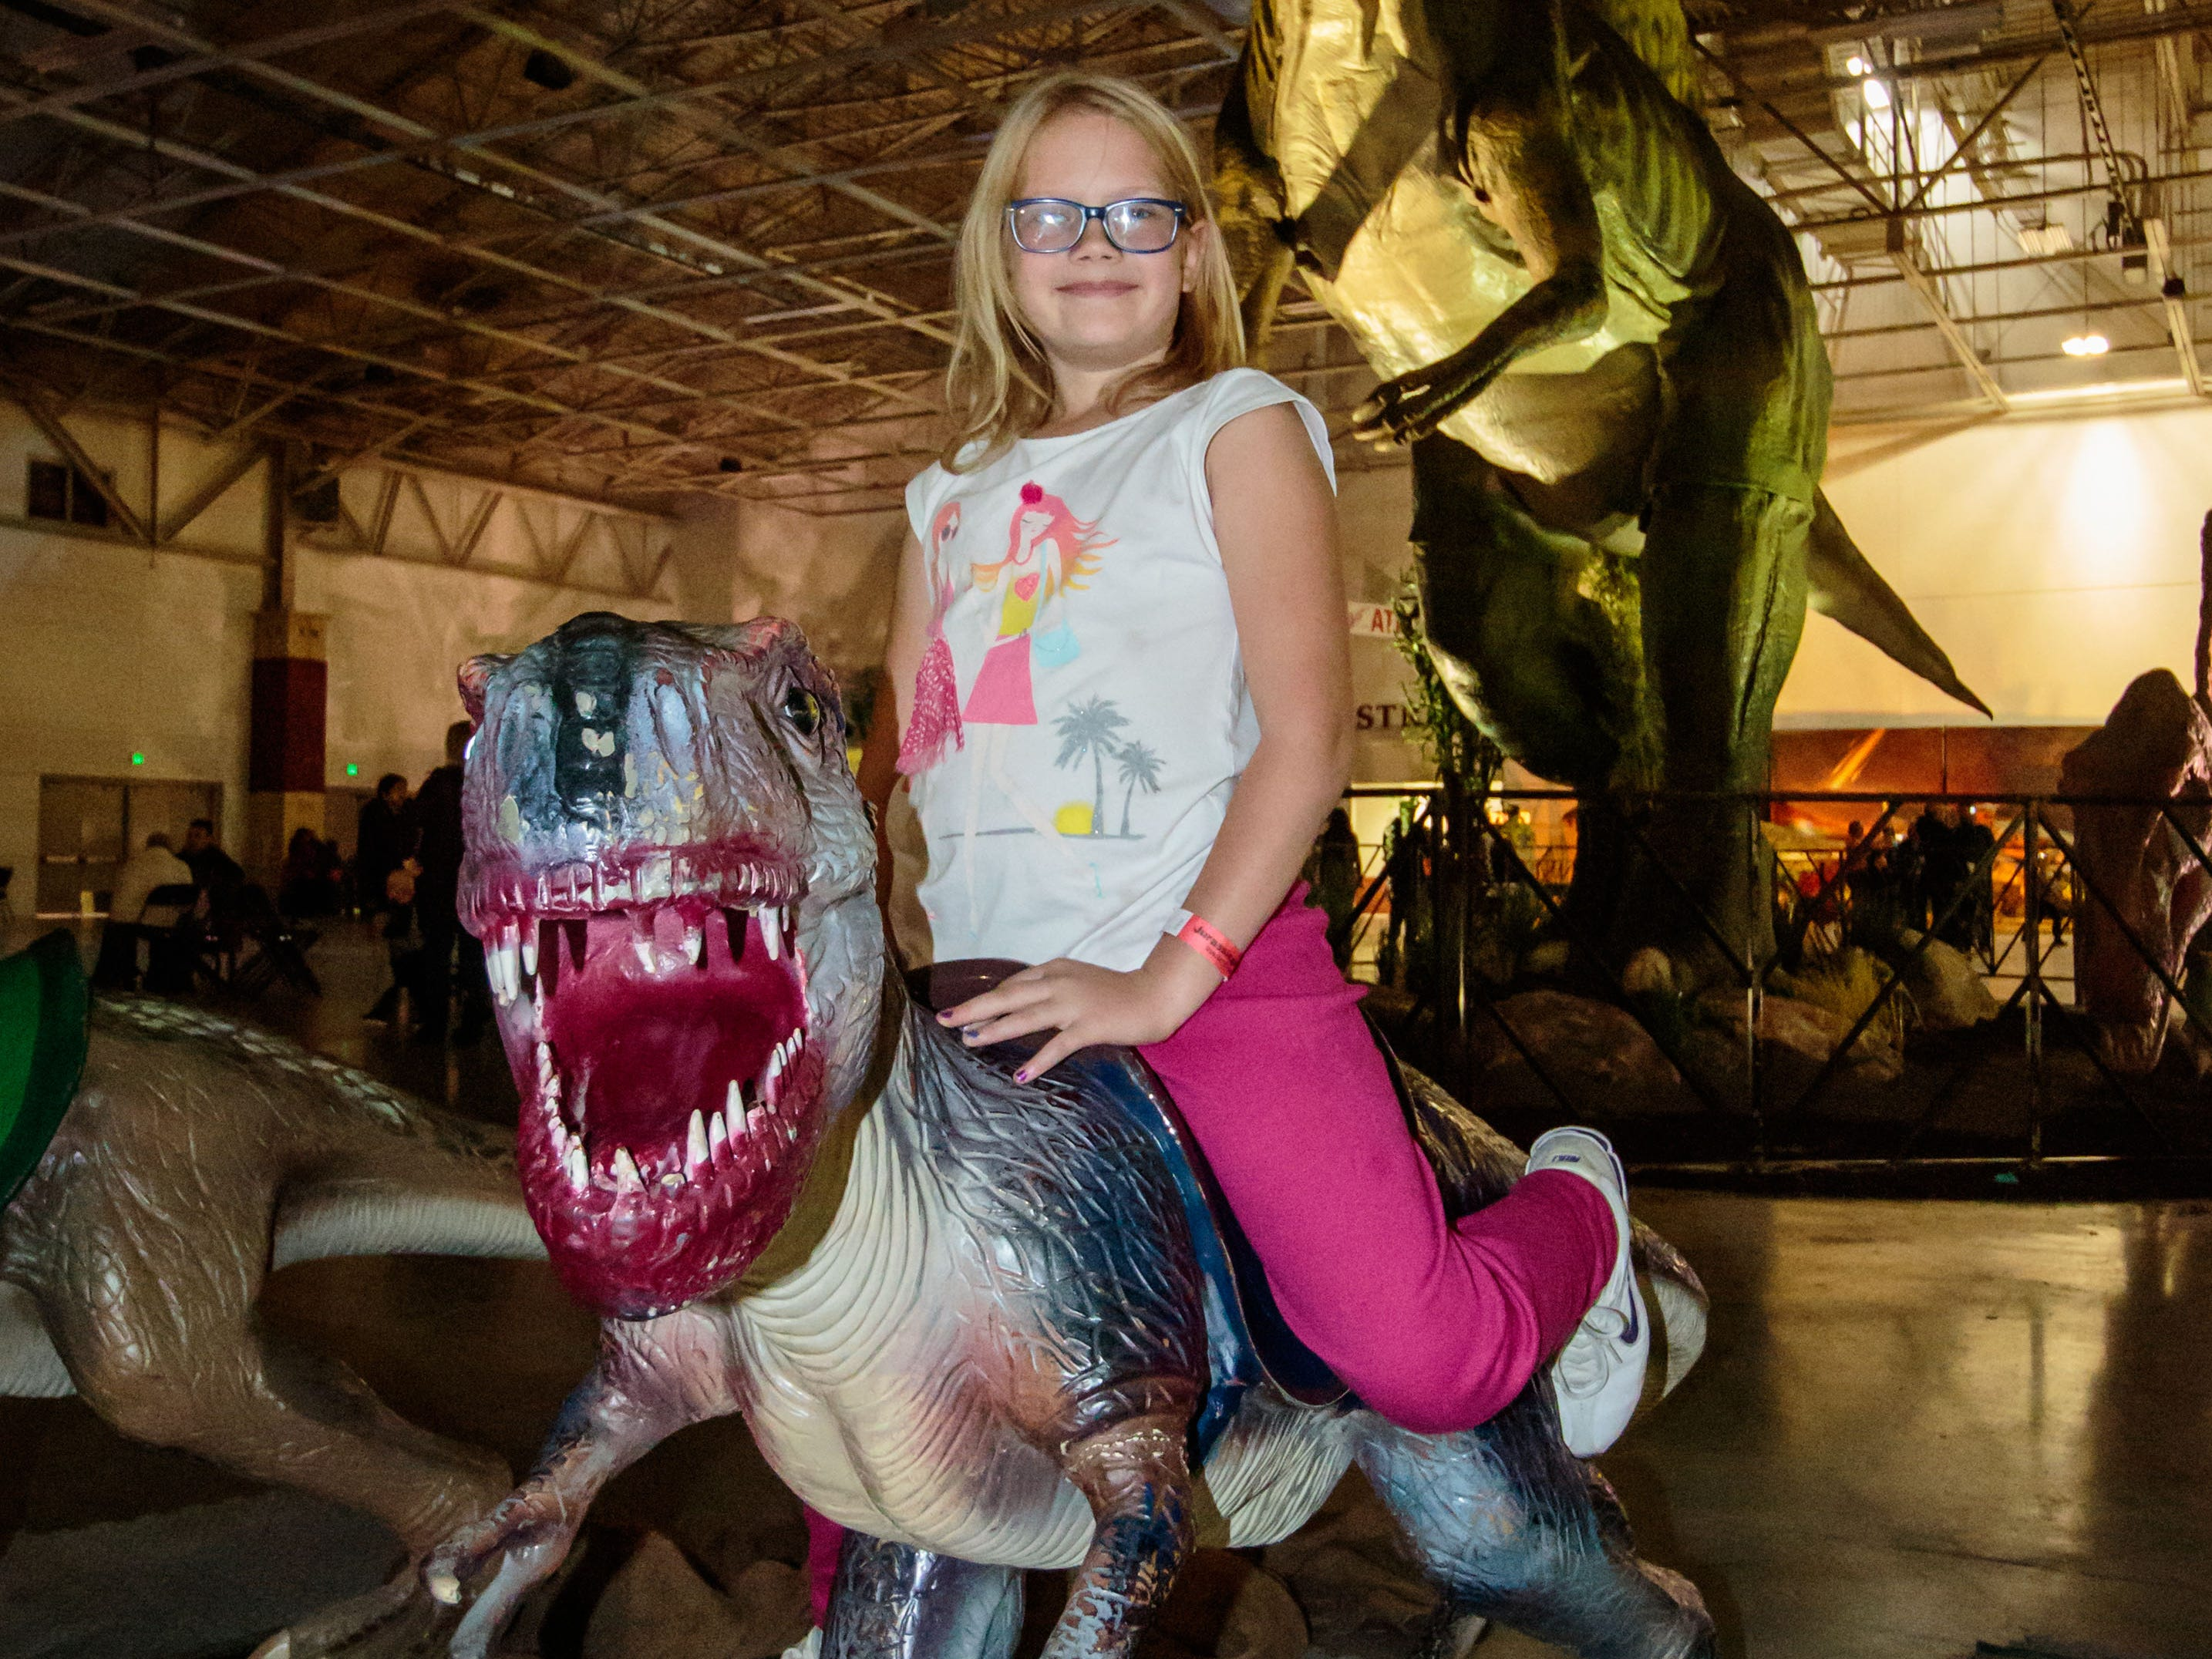 Ellie Fugate, 8, of Union Grove hops aboard a small dinosaur during her visit to the Jurassic Quest exhibit at Wisconsin State Fair Park in West Allis on Sunday, Oct. 21, 2018. The three-day event featured more than 80 life-sized animatronic dinosaurs, fossils, games, crafts, bounce houses and more.